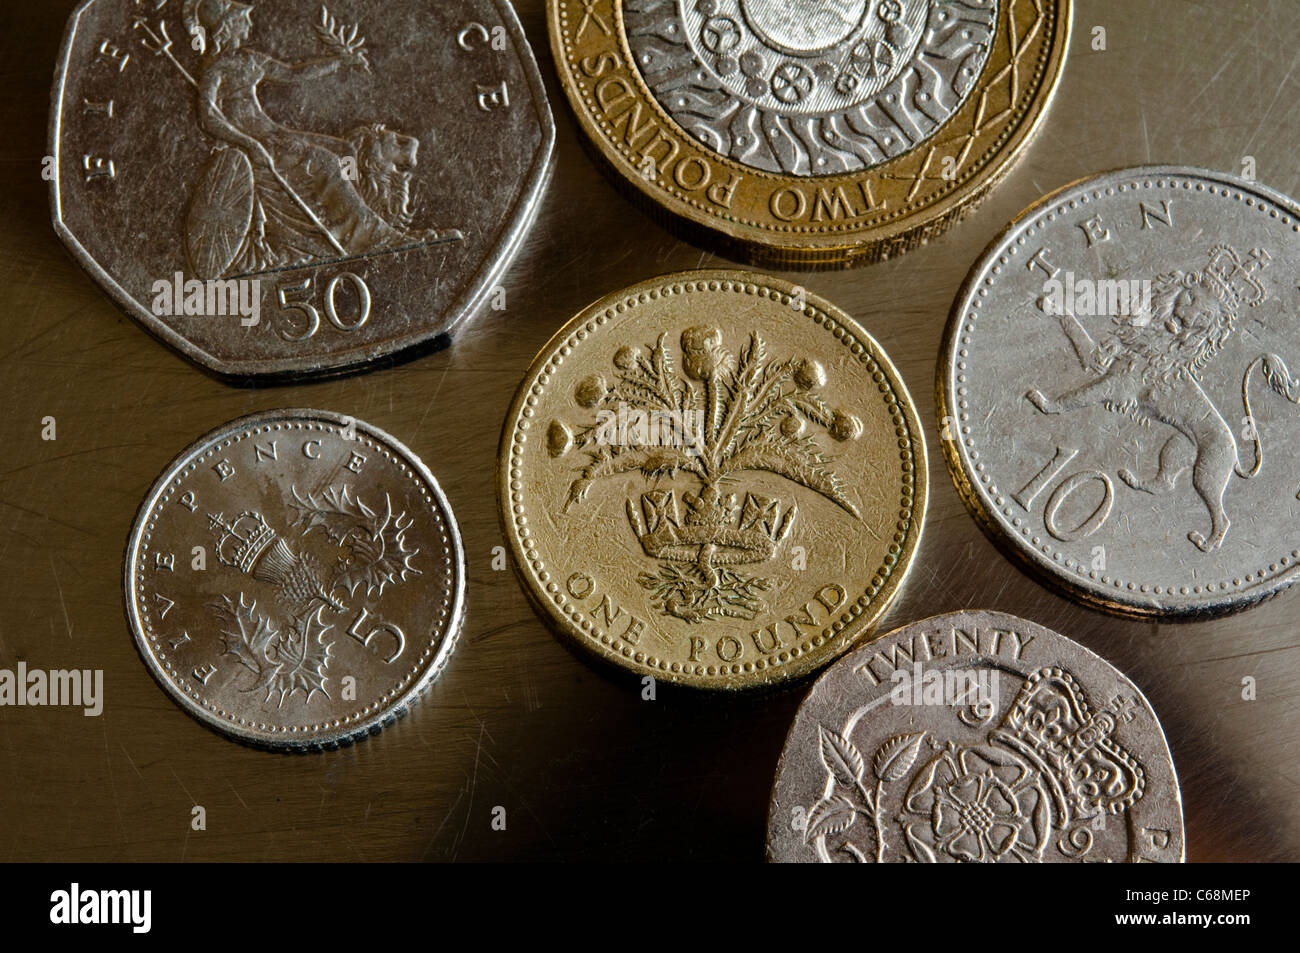 UK coins / money - Scottish £1 pound, £2 pounds, 50p, 10p and 5 pence coin - close up view. - Stock Image